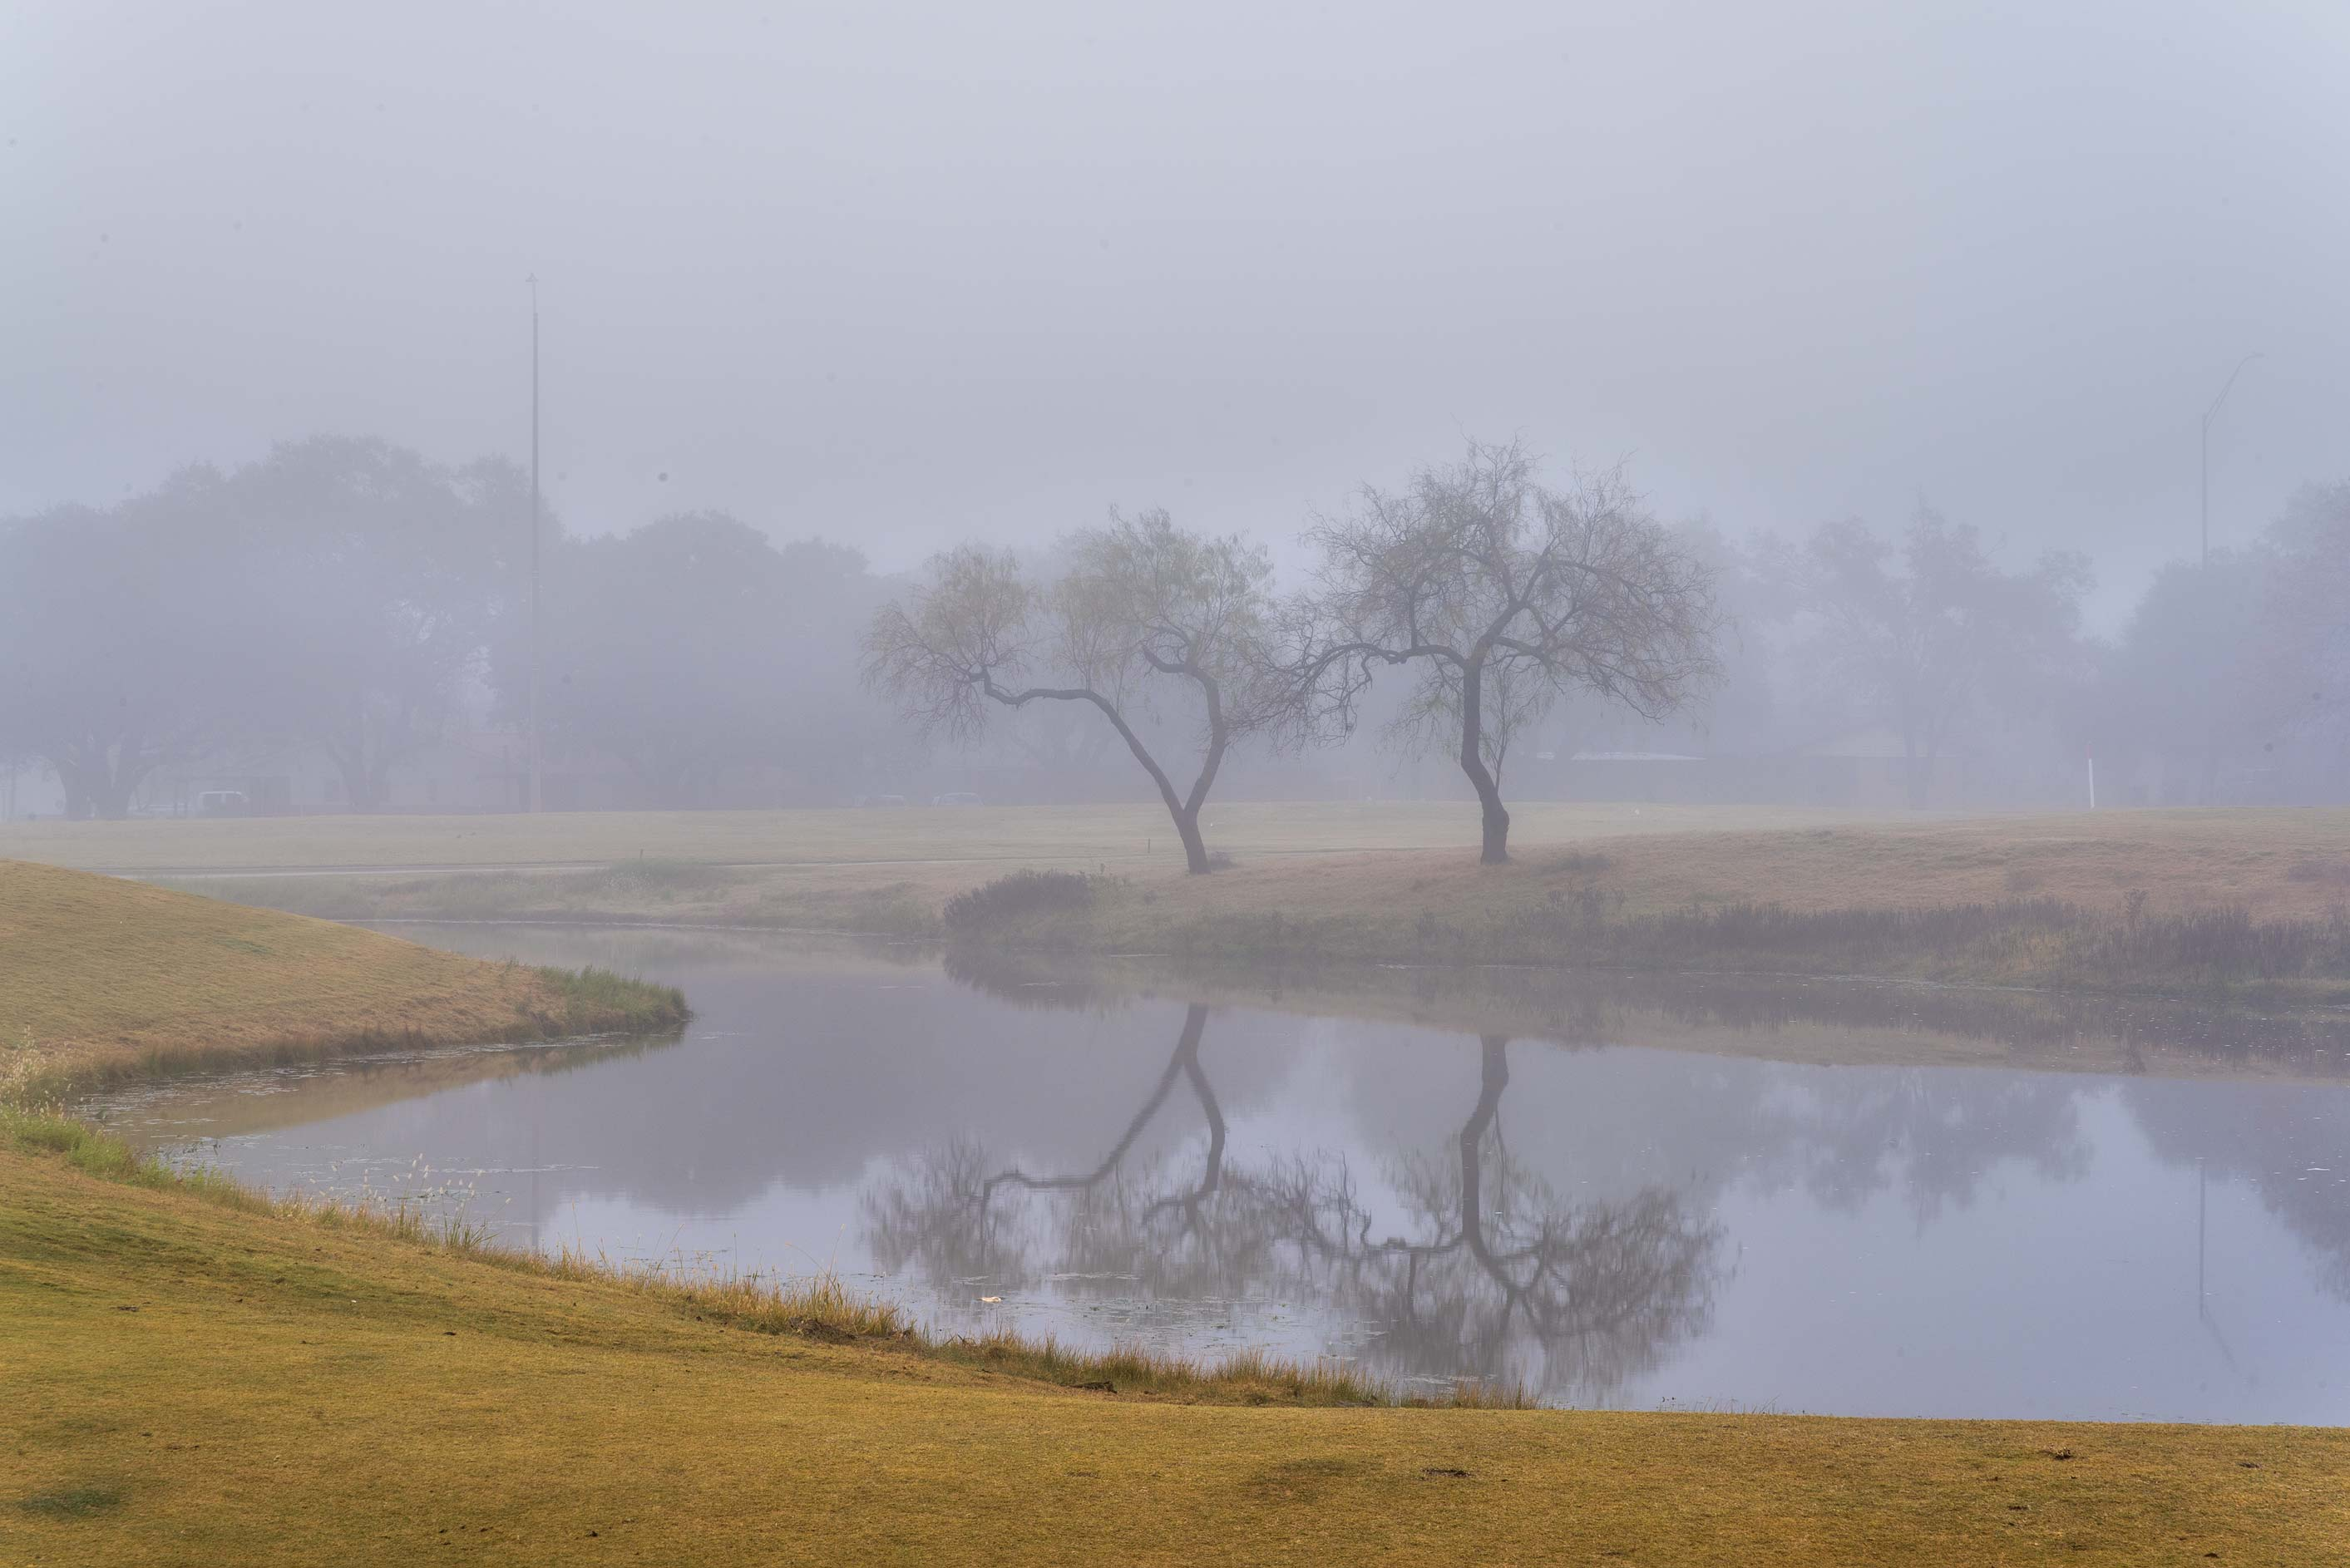 A pond in fog on Texas A&M Campus golf course. College Station, Texas